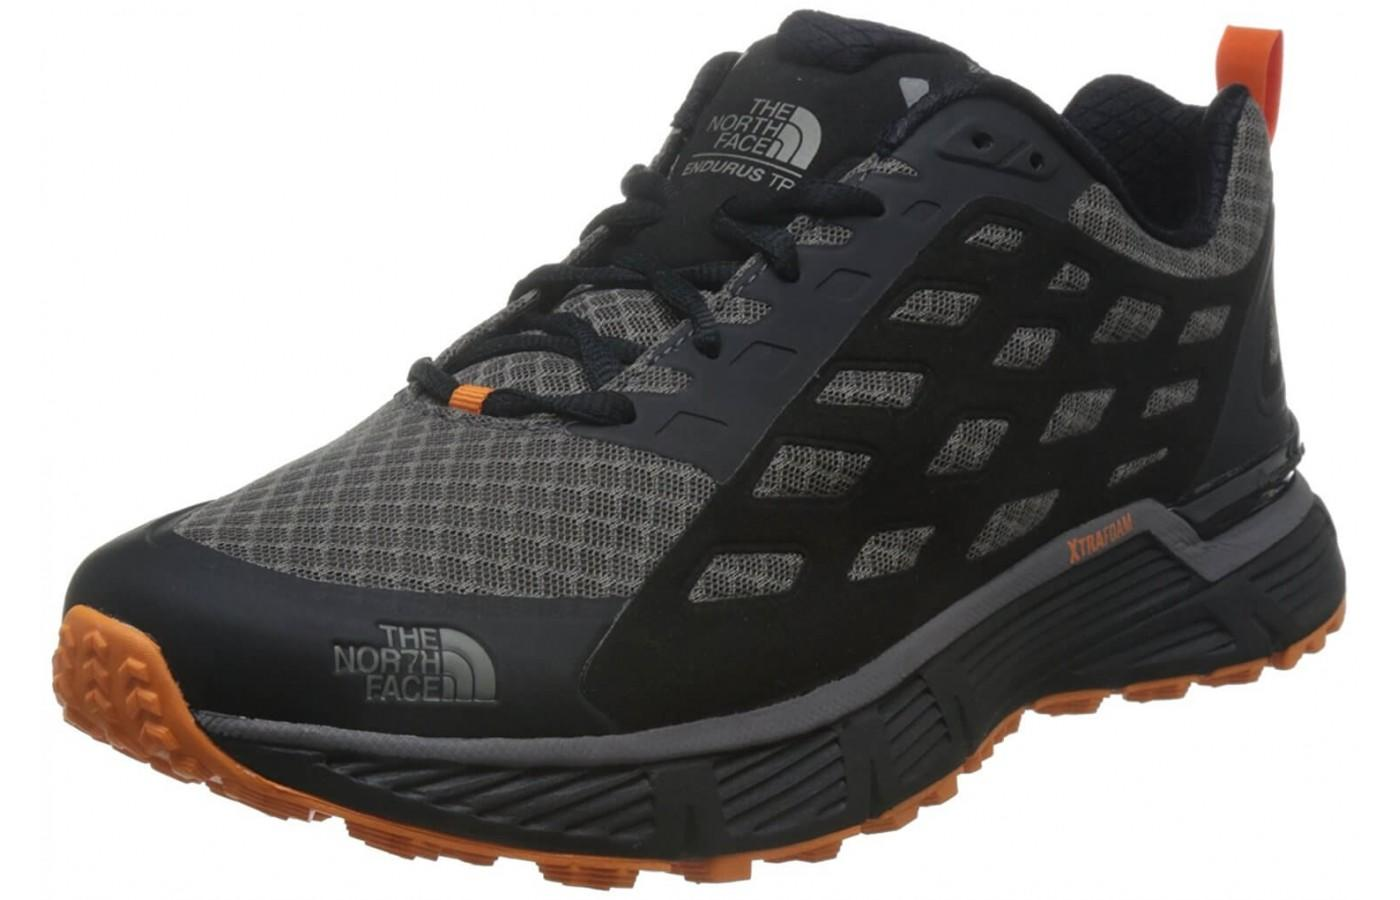 f8fbe8335 The North Face Endurus TR